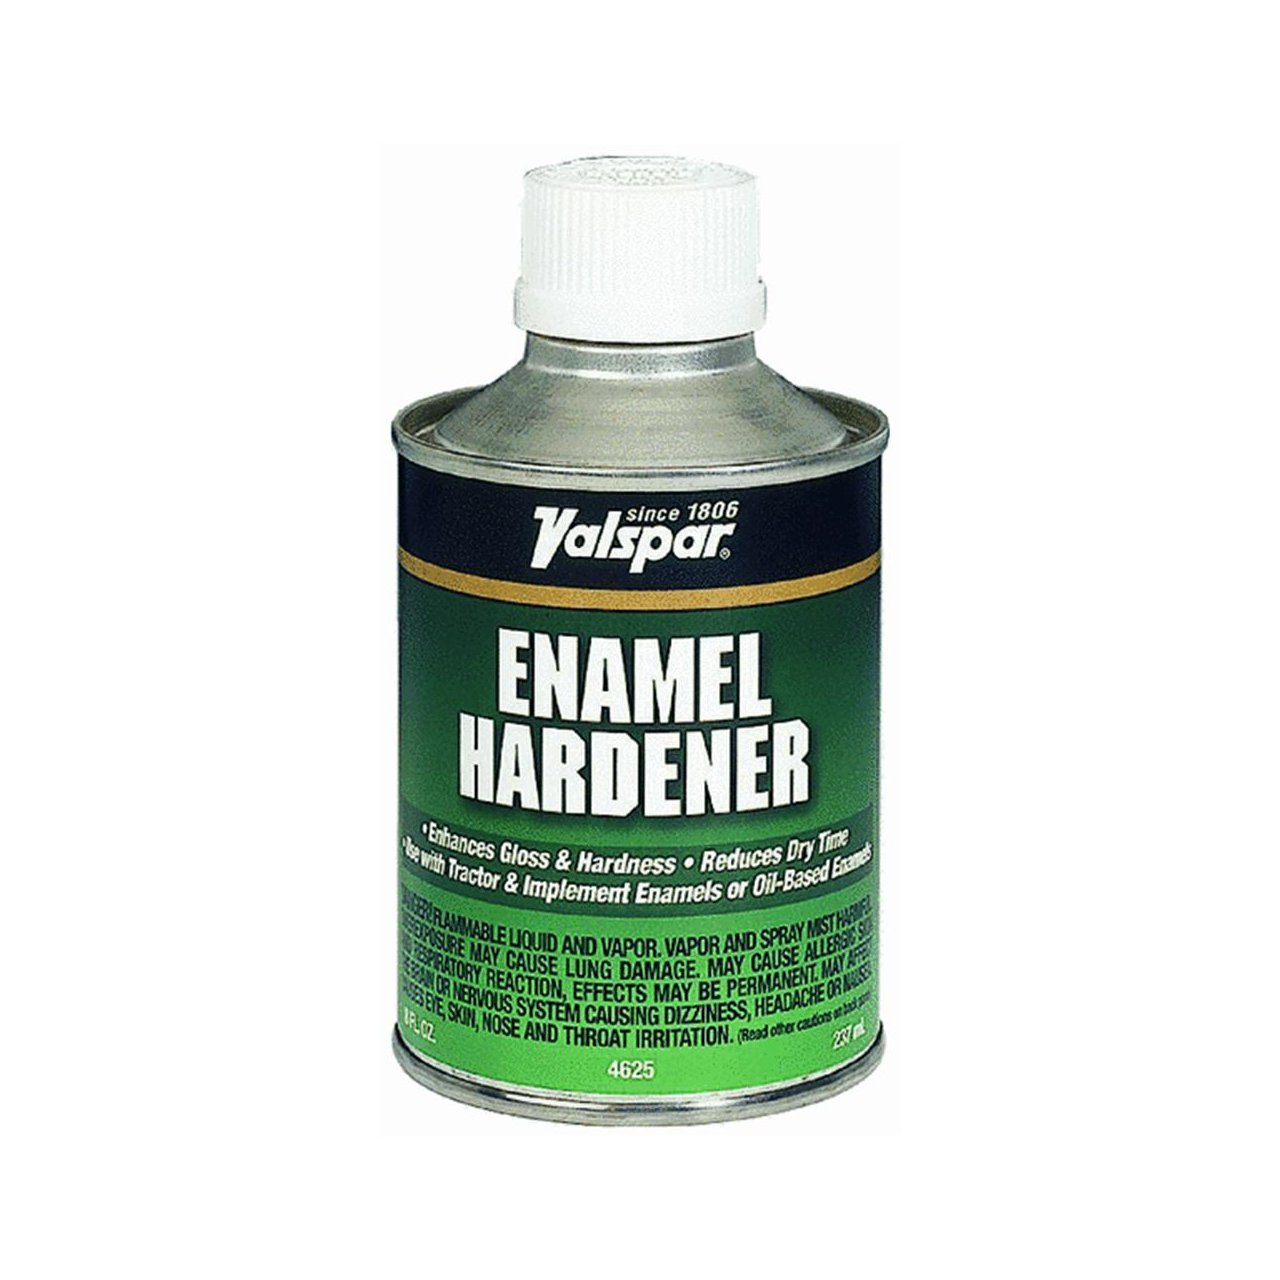 Just mix in the recommended amount with your paint and let sit for a half hour before use dries hard as a rock in a hour